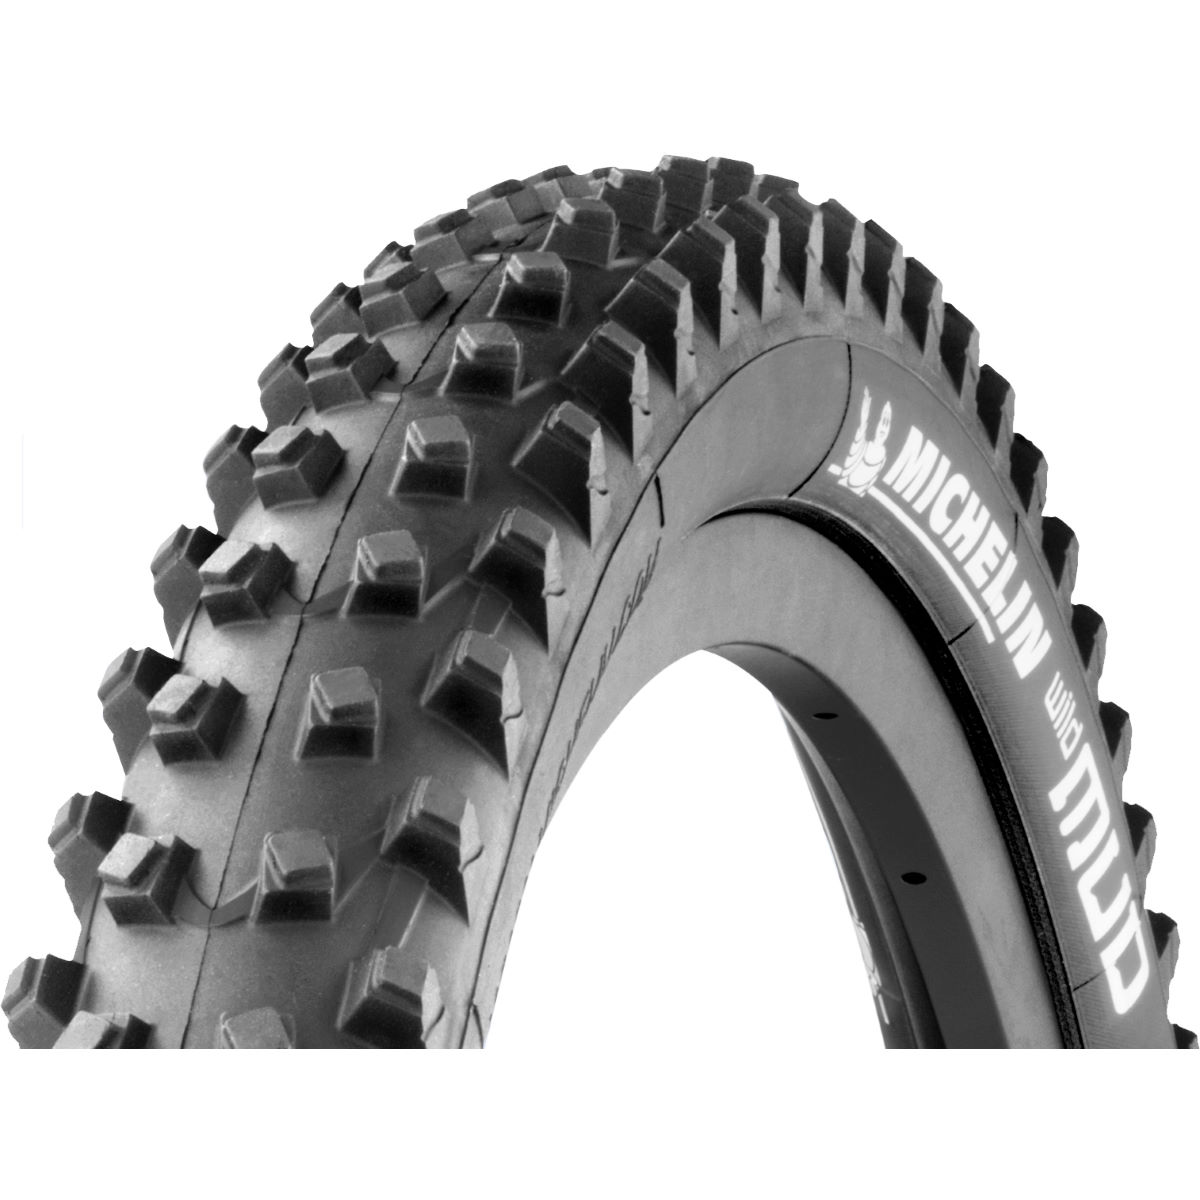 Pneu Michelin Wild Mud Advanced Reinforced 27,5 pouces (souple) - 27.5 x 2.25 Noir Pneus VTT